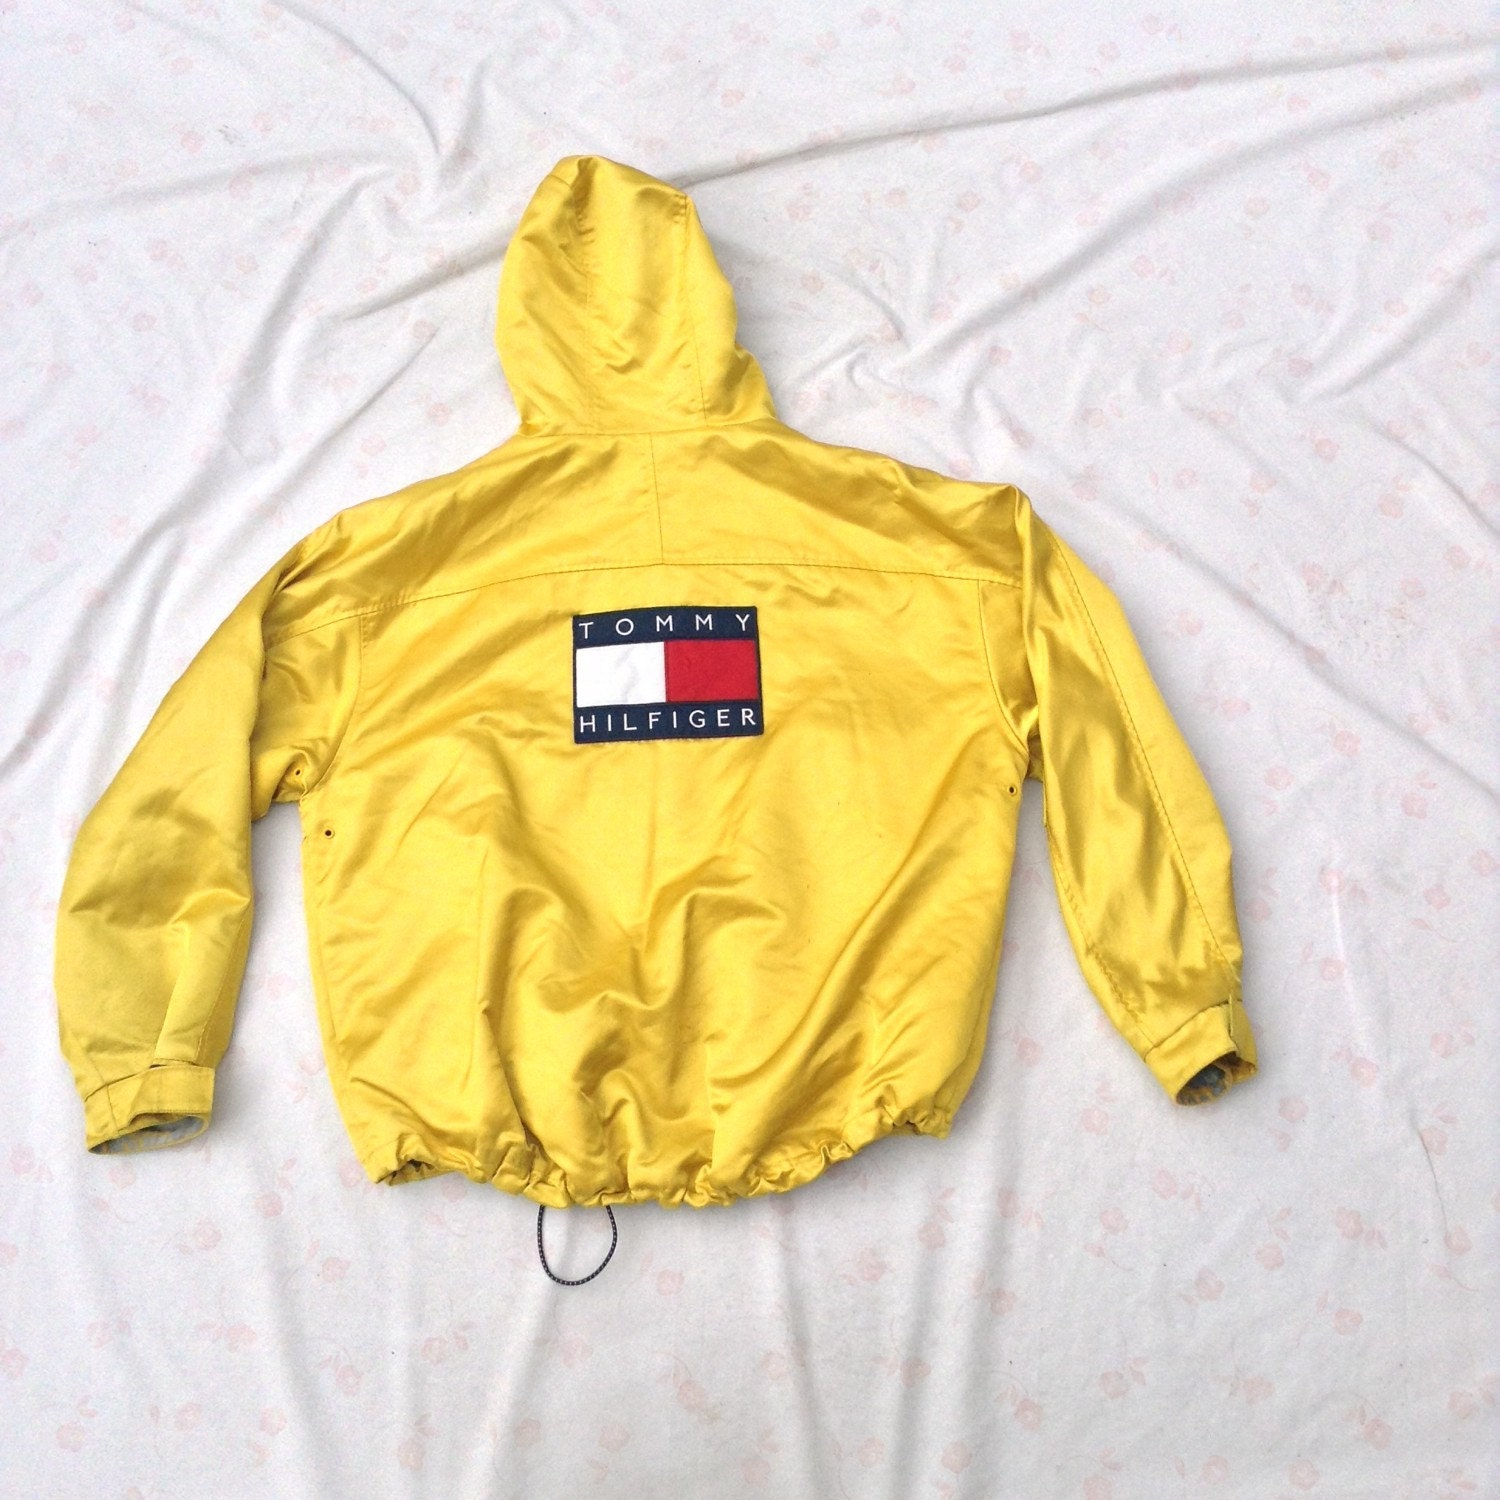 tommy hilfiger jacket yellow shiny swag oversized 2x. Black Bedroom Furniture Sets. Home Design Ideas